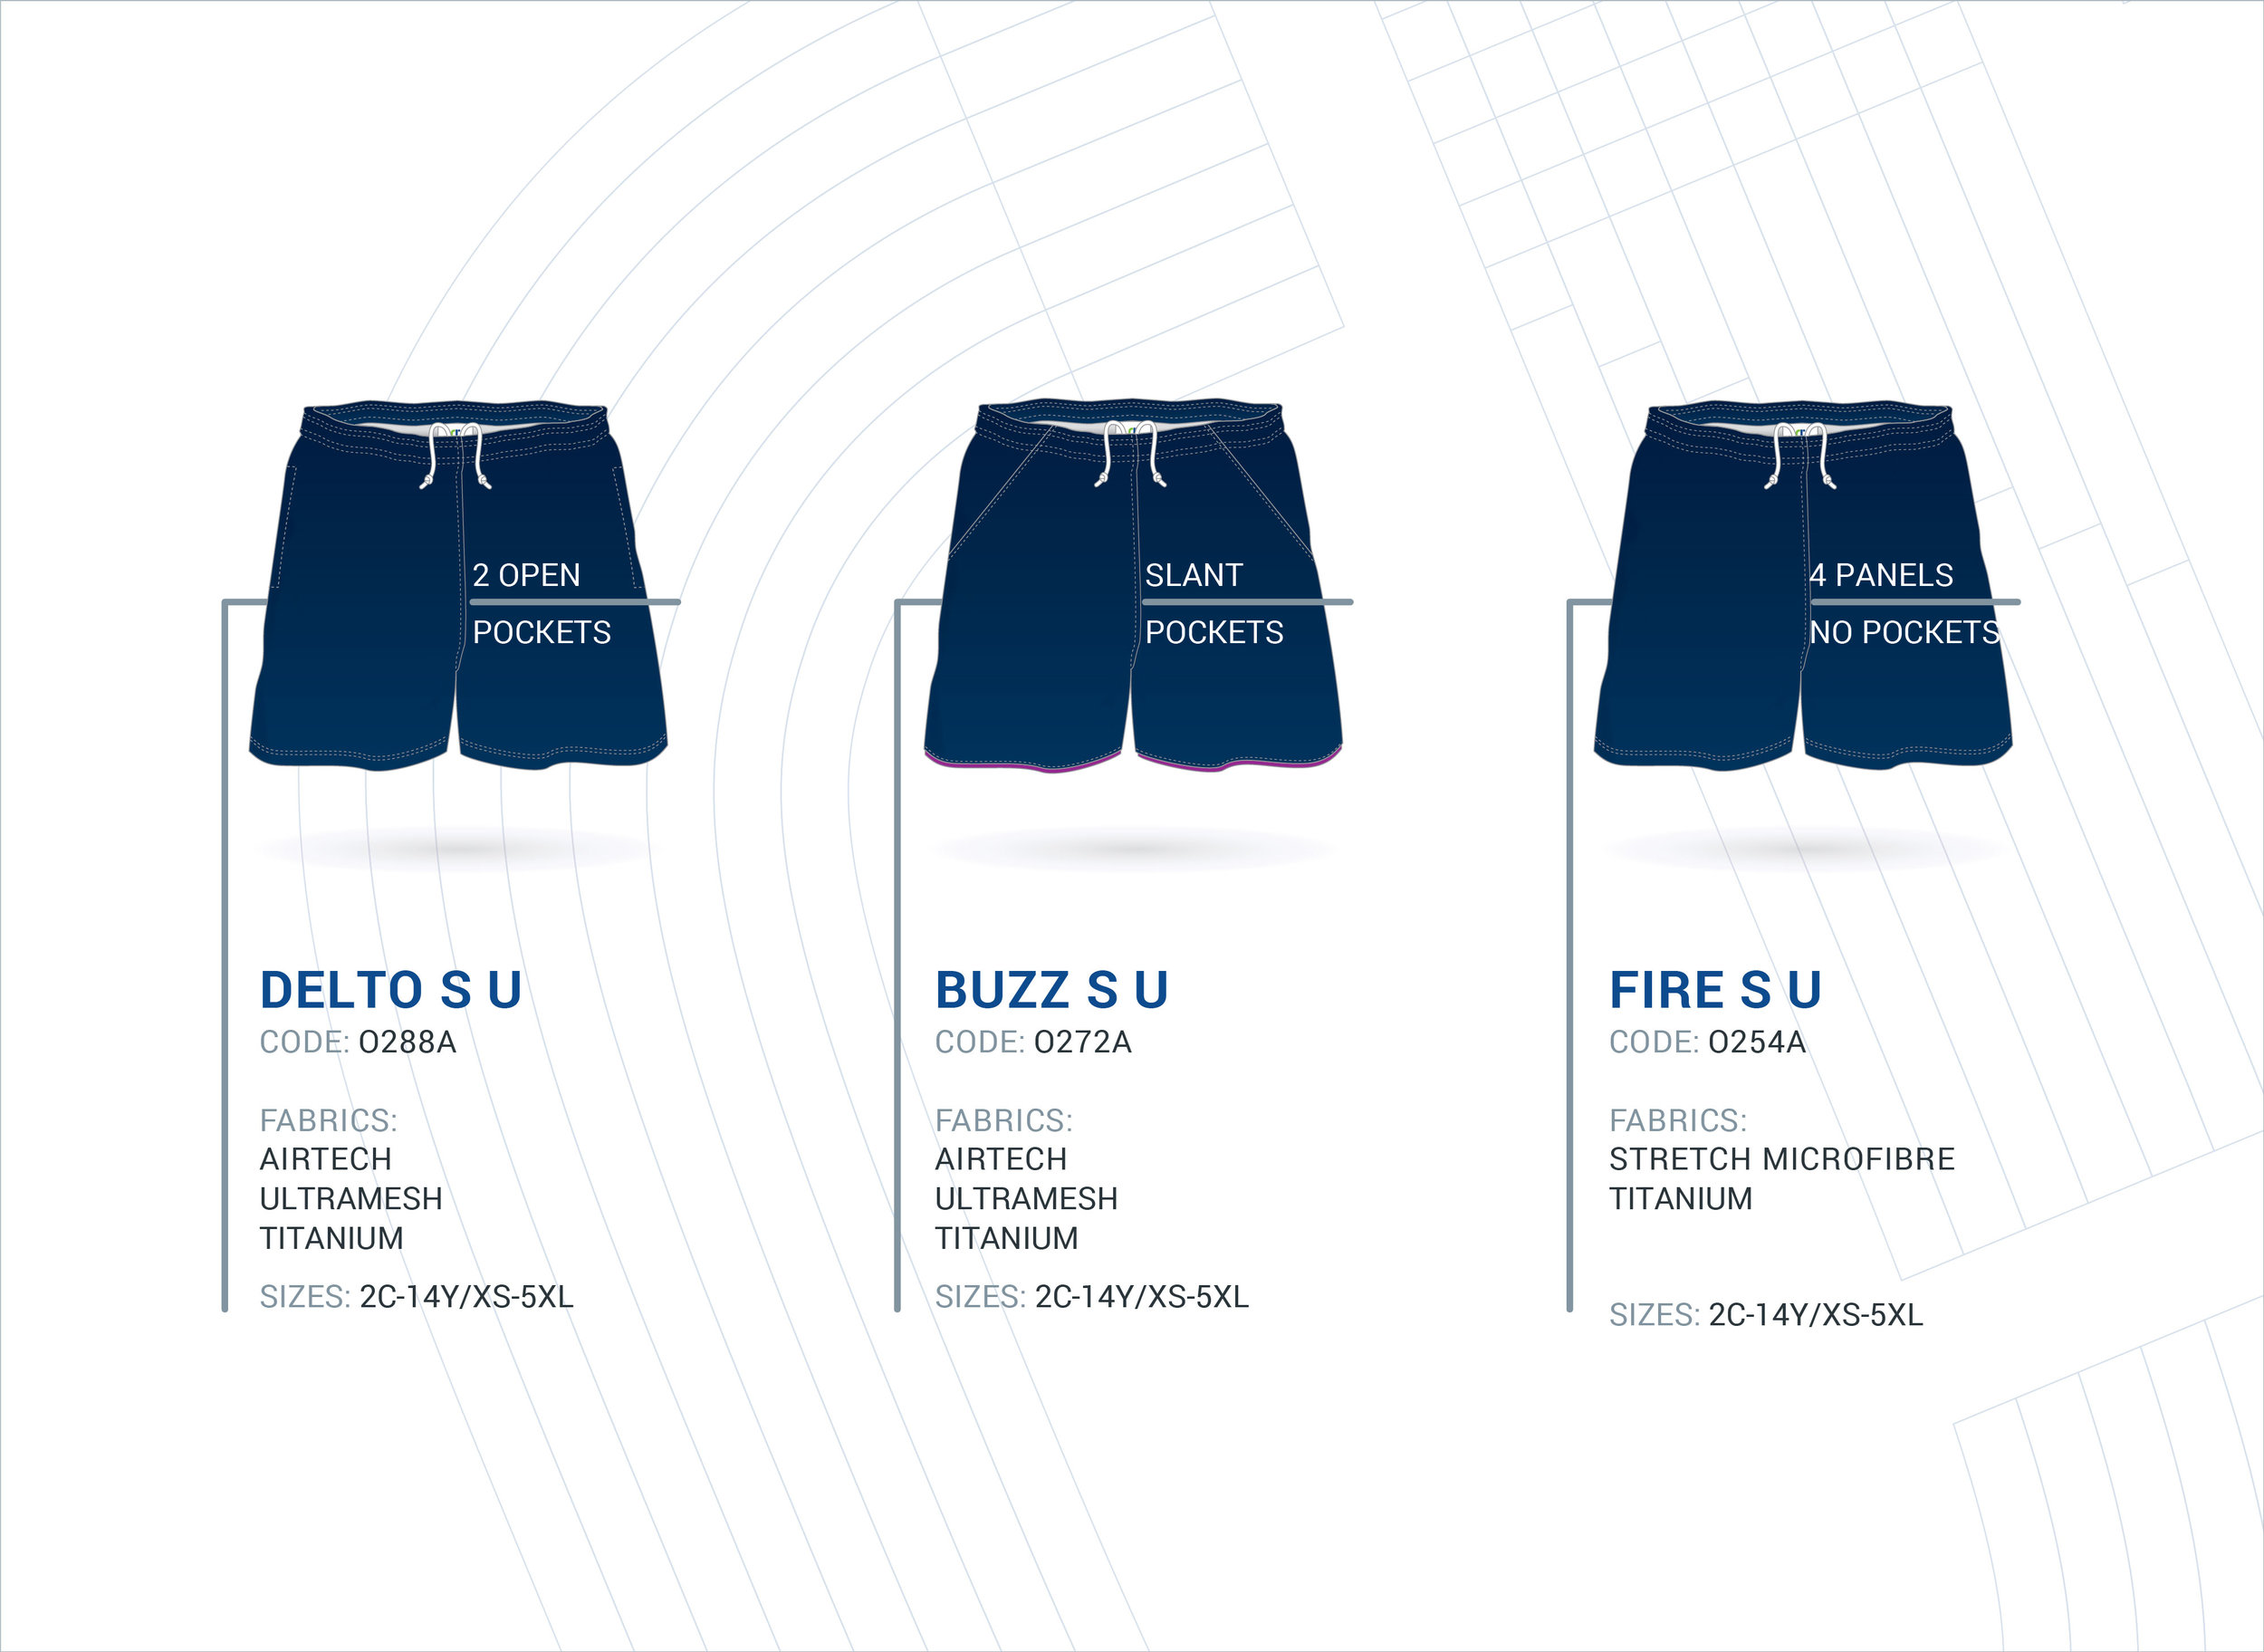 Unisex Multi-Purpose Shorts - Continued